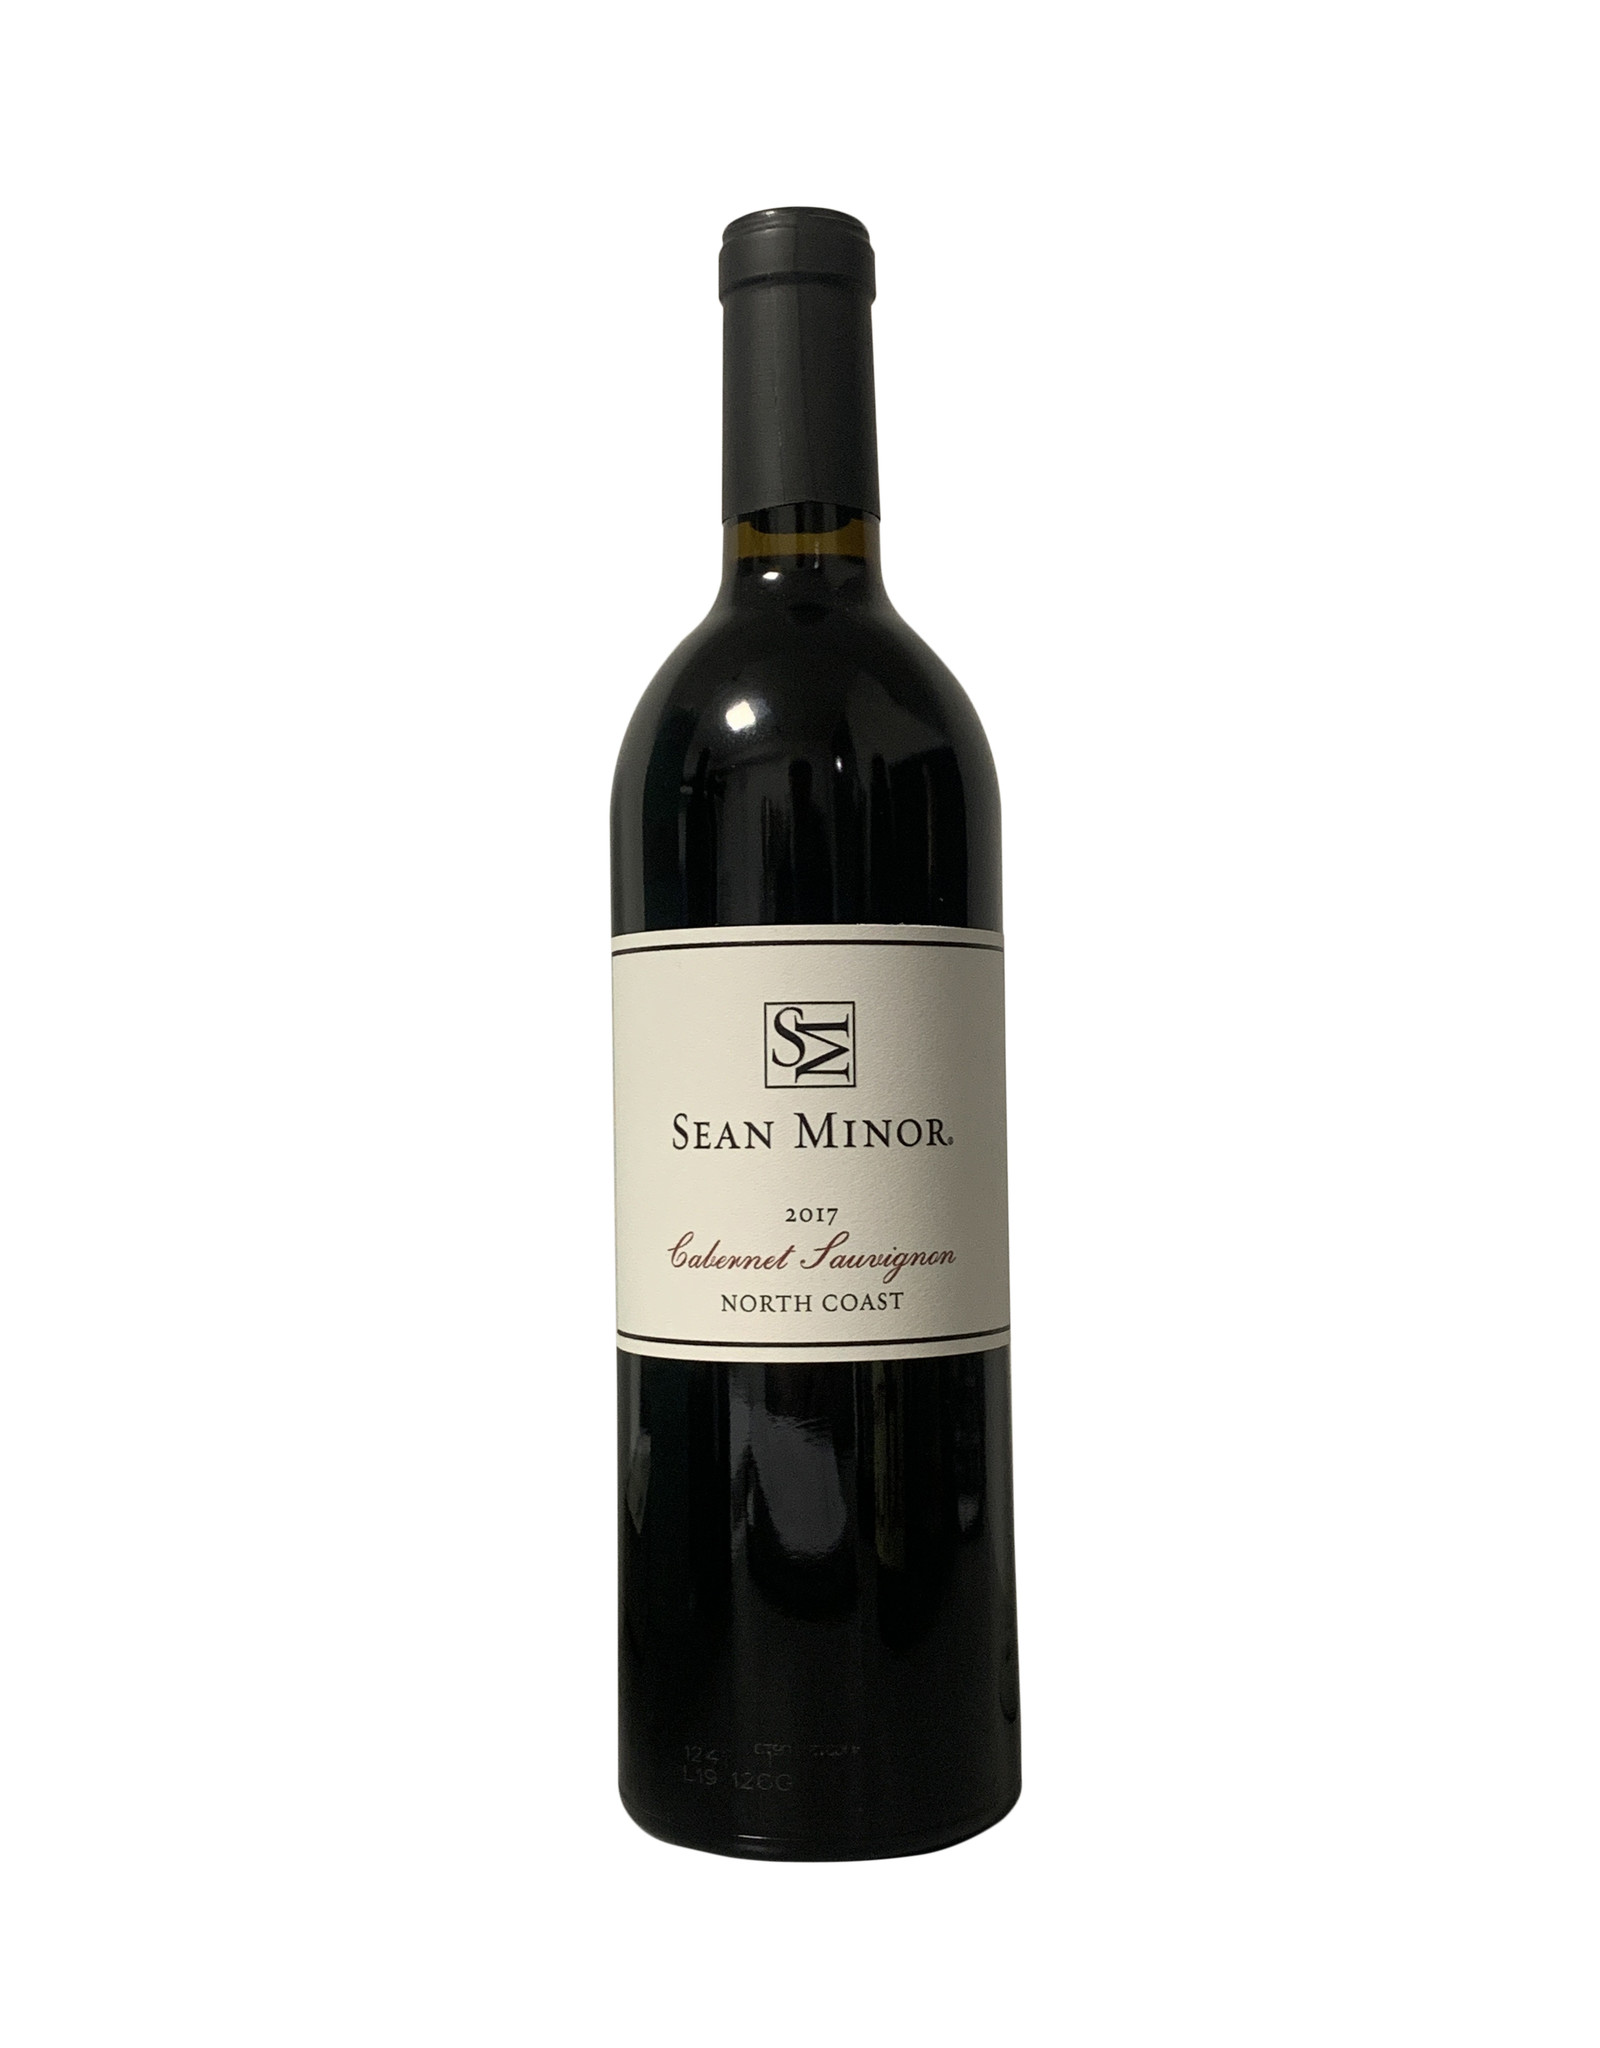 Sean Minor Sean Minor Signature Series Cabernet Sauvignon North Coast 2017, California (750mL)